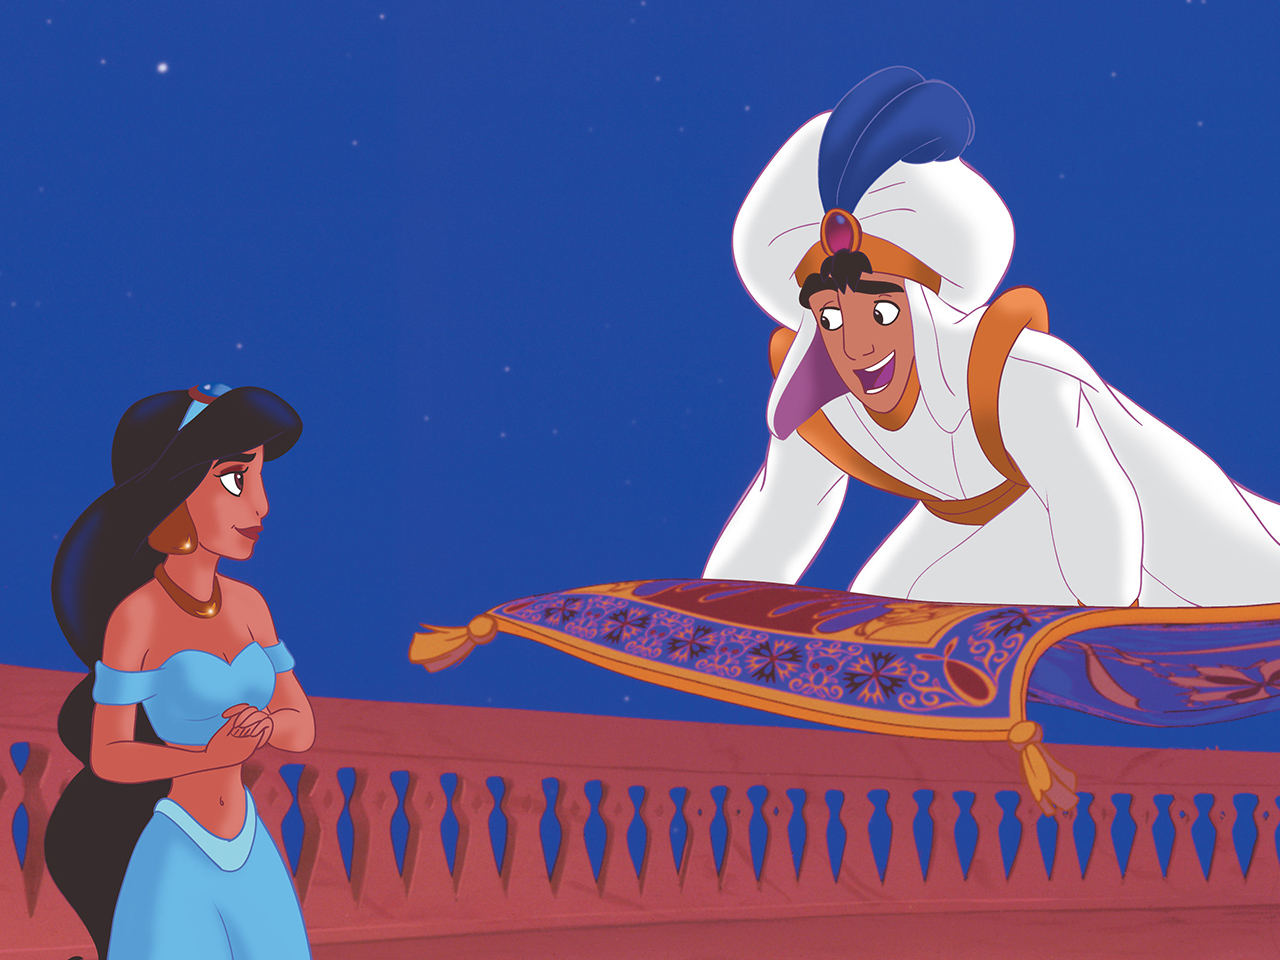 A still from the kids' animated movie Aladdin